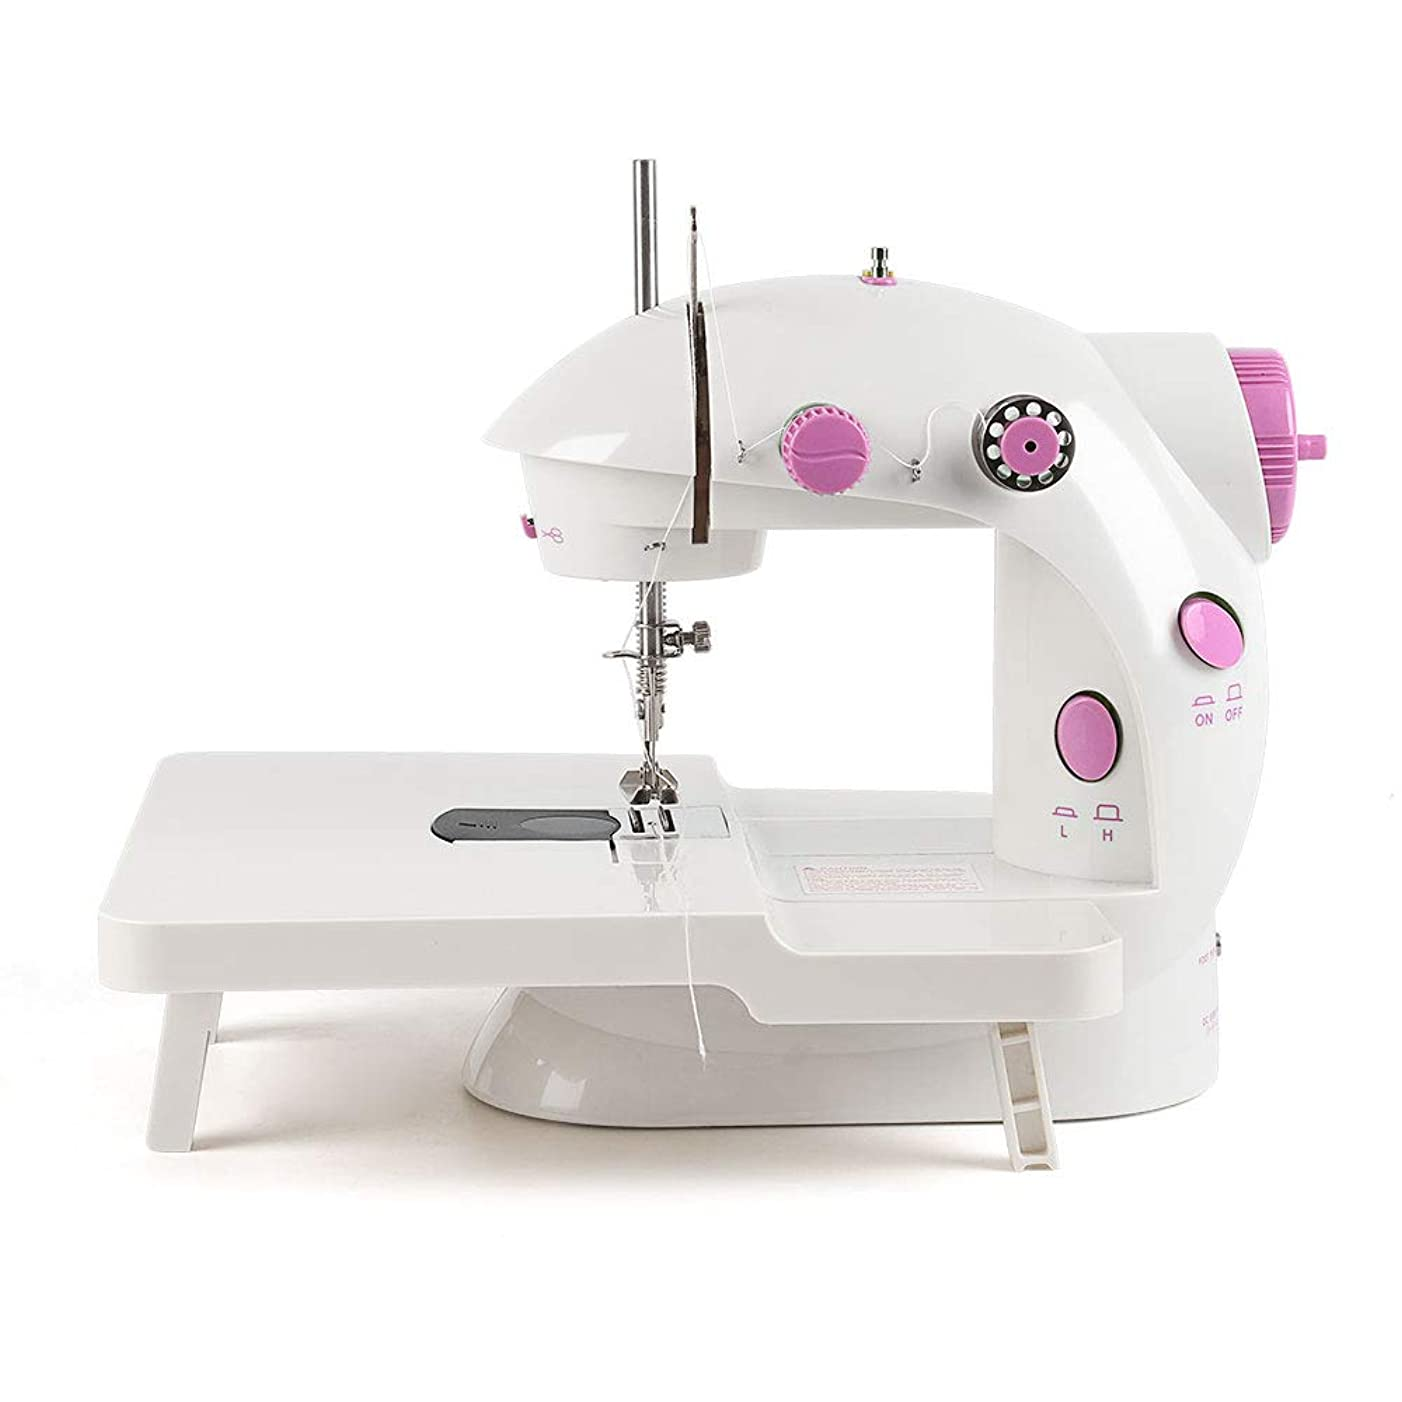 NEX Mini Sewing Machine Double Speed Double Thread Household Electric Sewing Machine with Extension Table Foot Pedal Lamp Thread Cutter Safety Cover (NX-BSM202A)